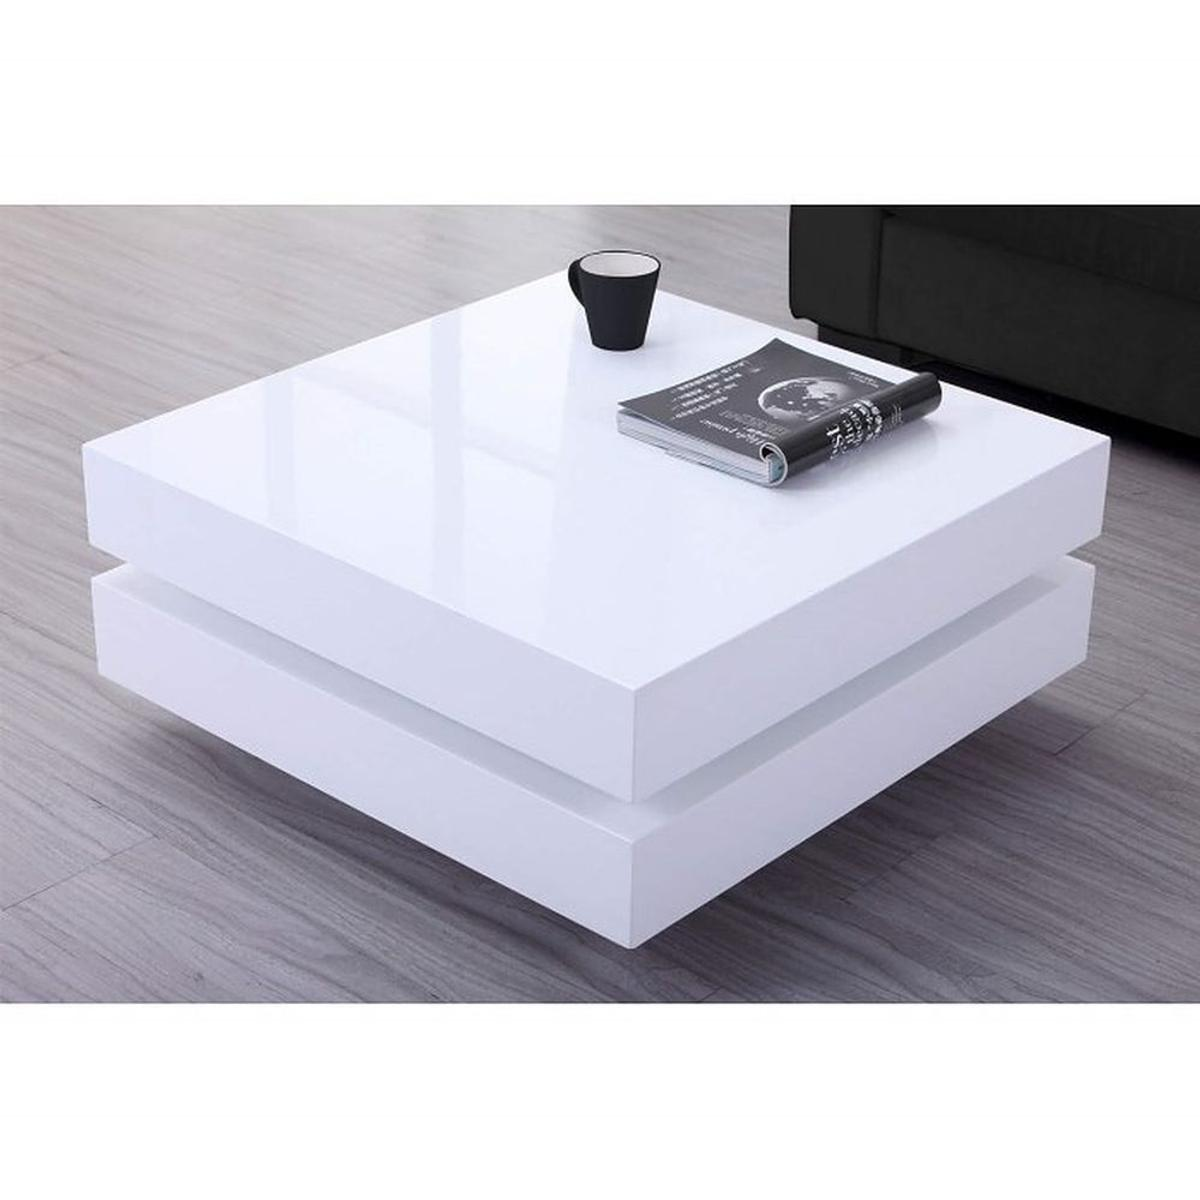 Tiffany White High Gloss Led Coffee Table In Hd2